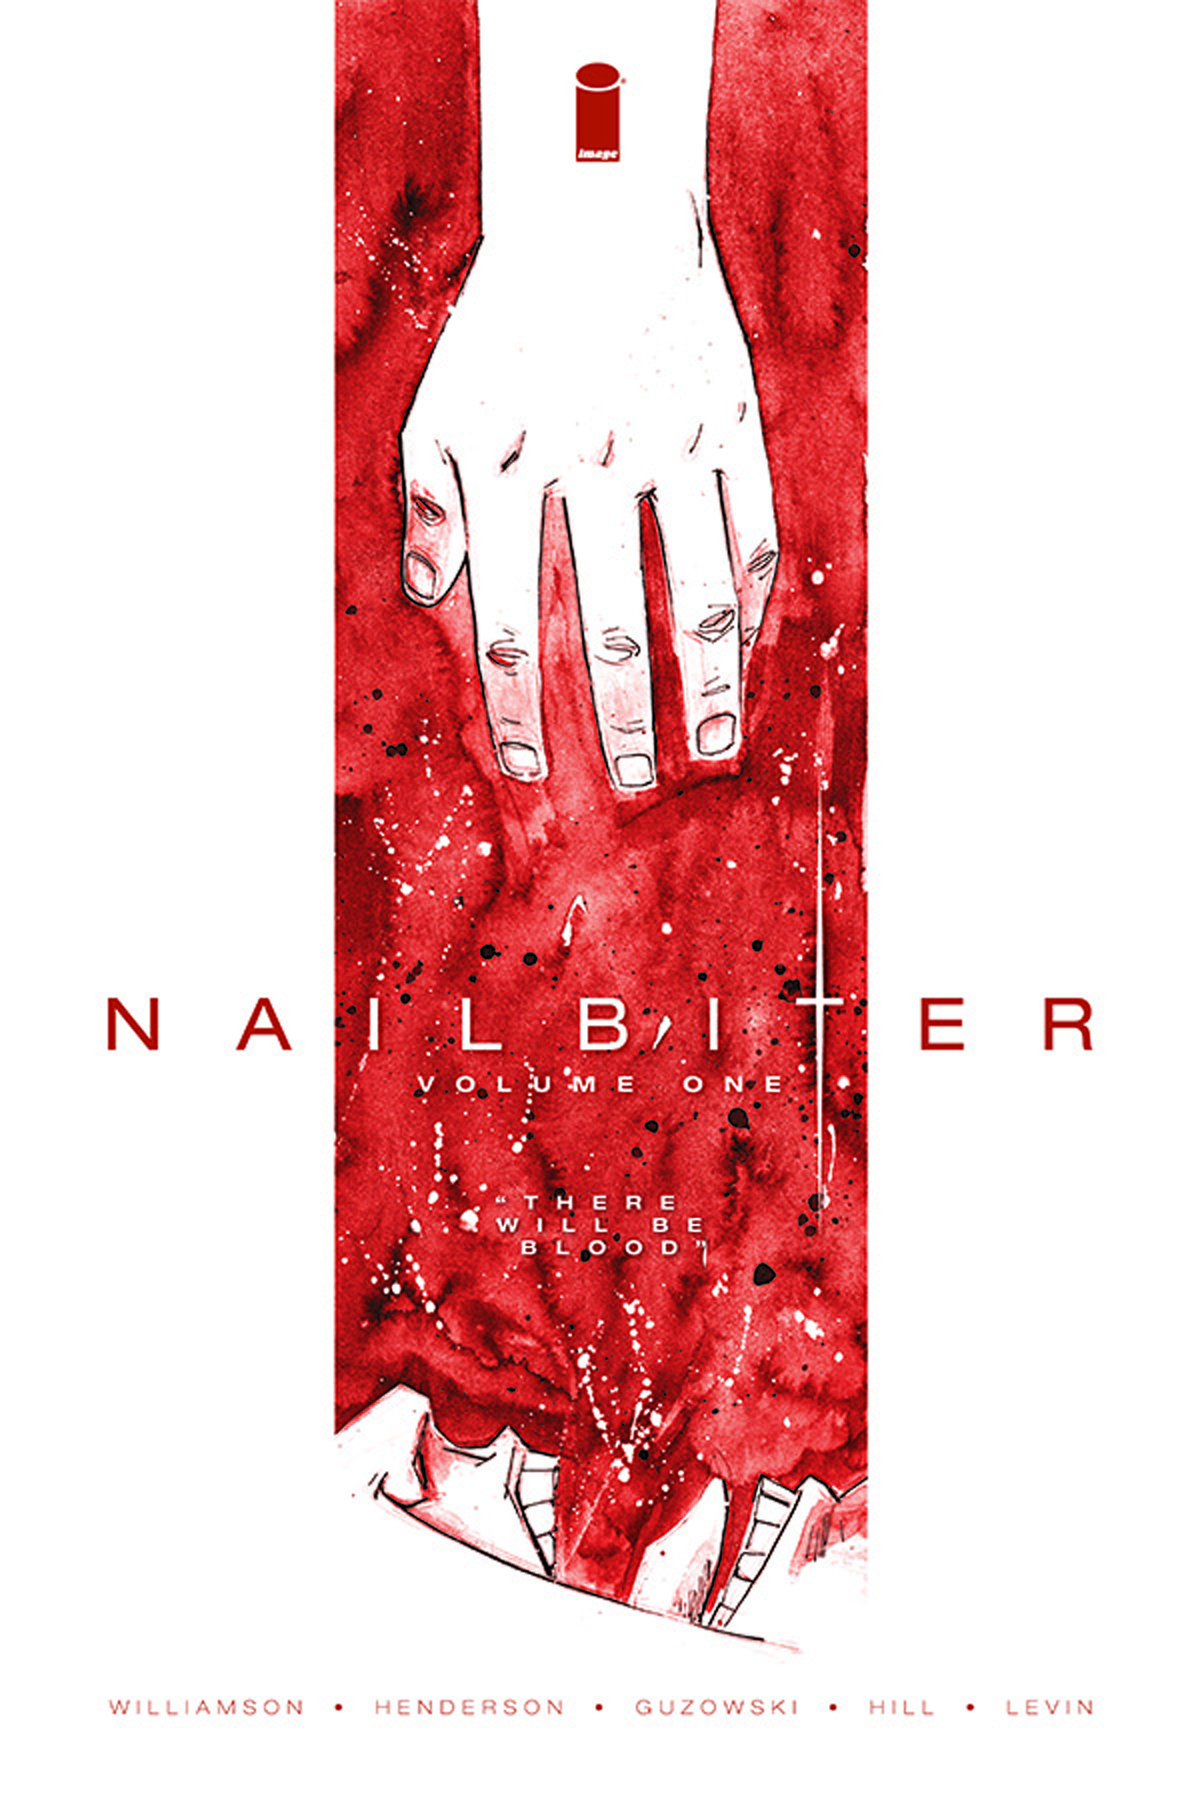 NAILBITER TP VOL 01 THERE WILL BE BLOOD (AUG140593) (MR)